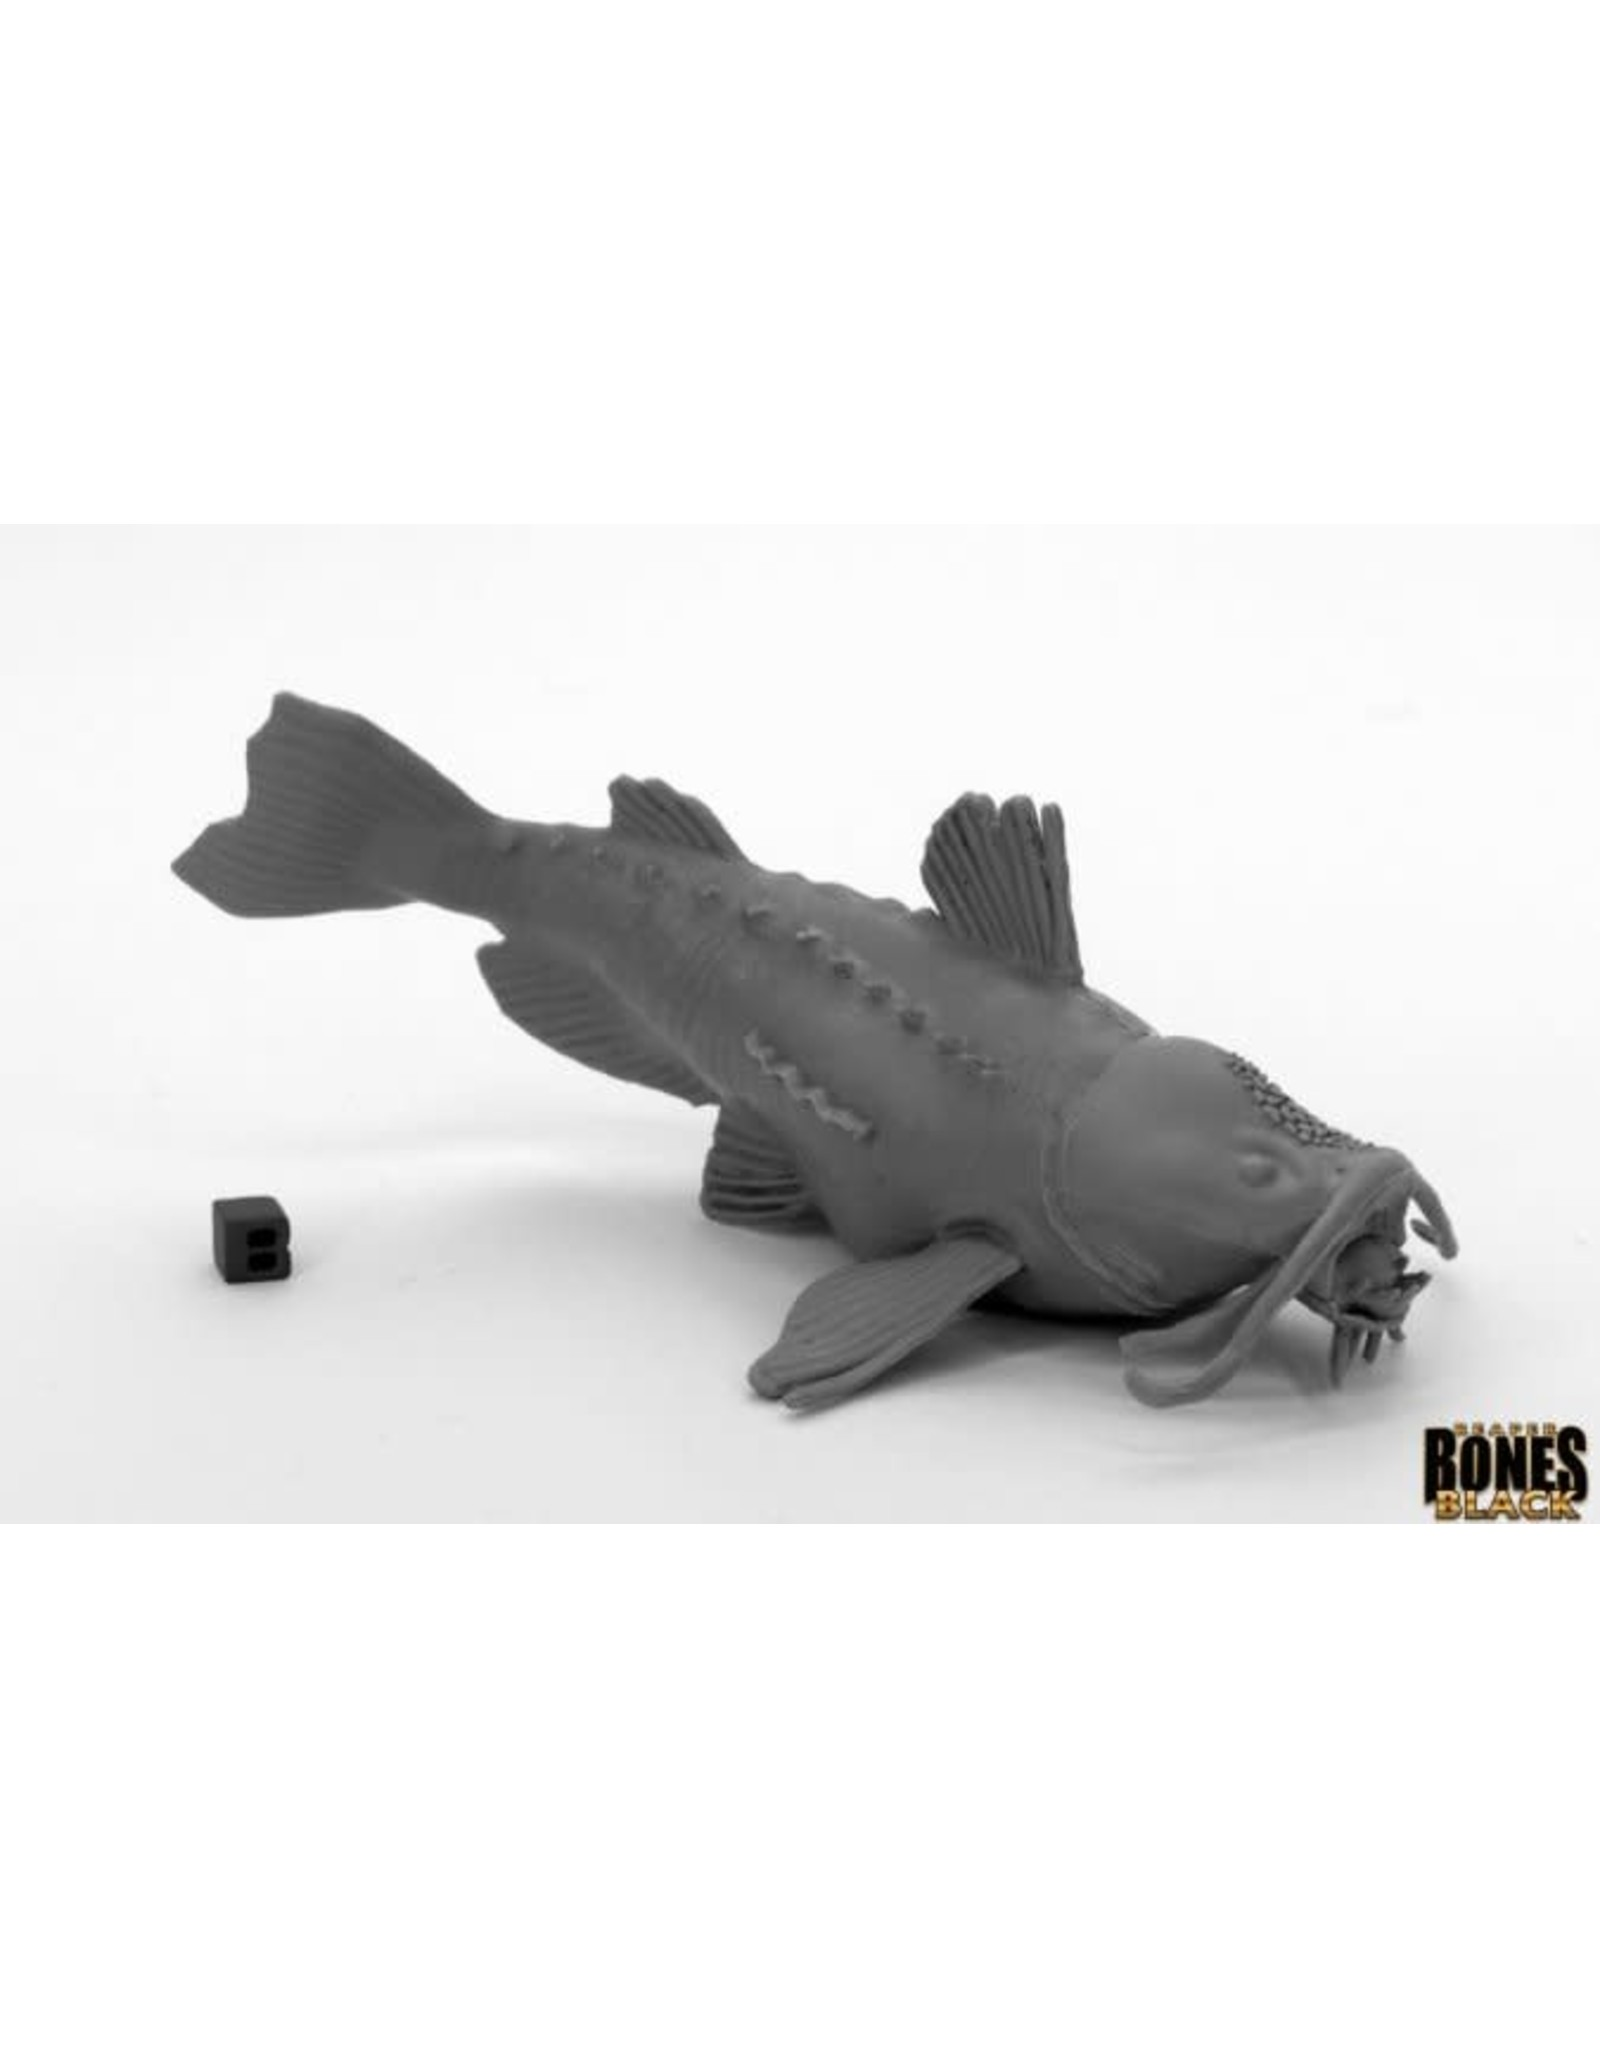 Reaper Miniatures Bones Black: Gulper